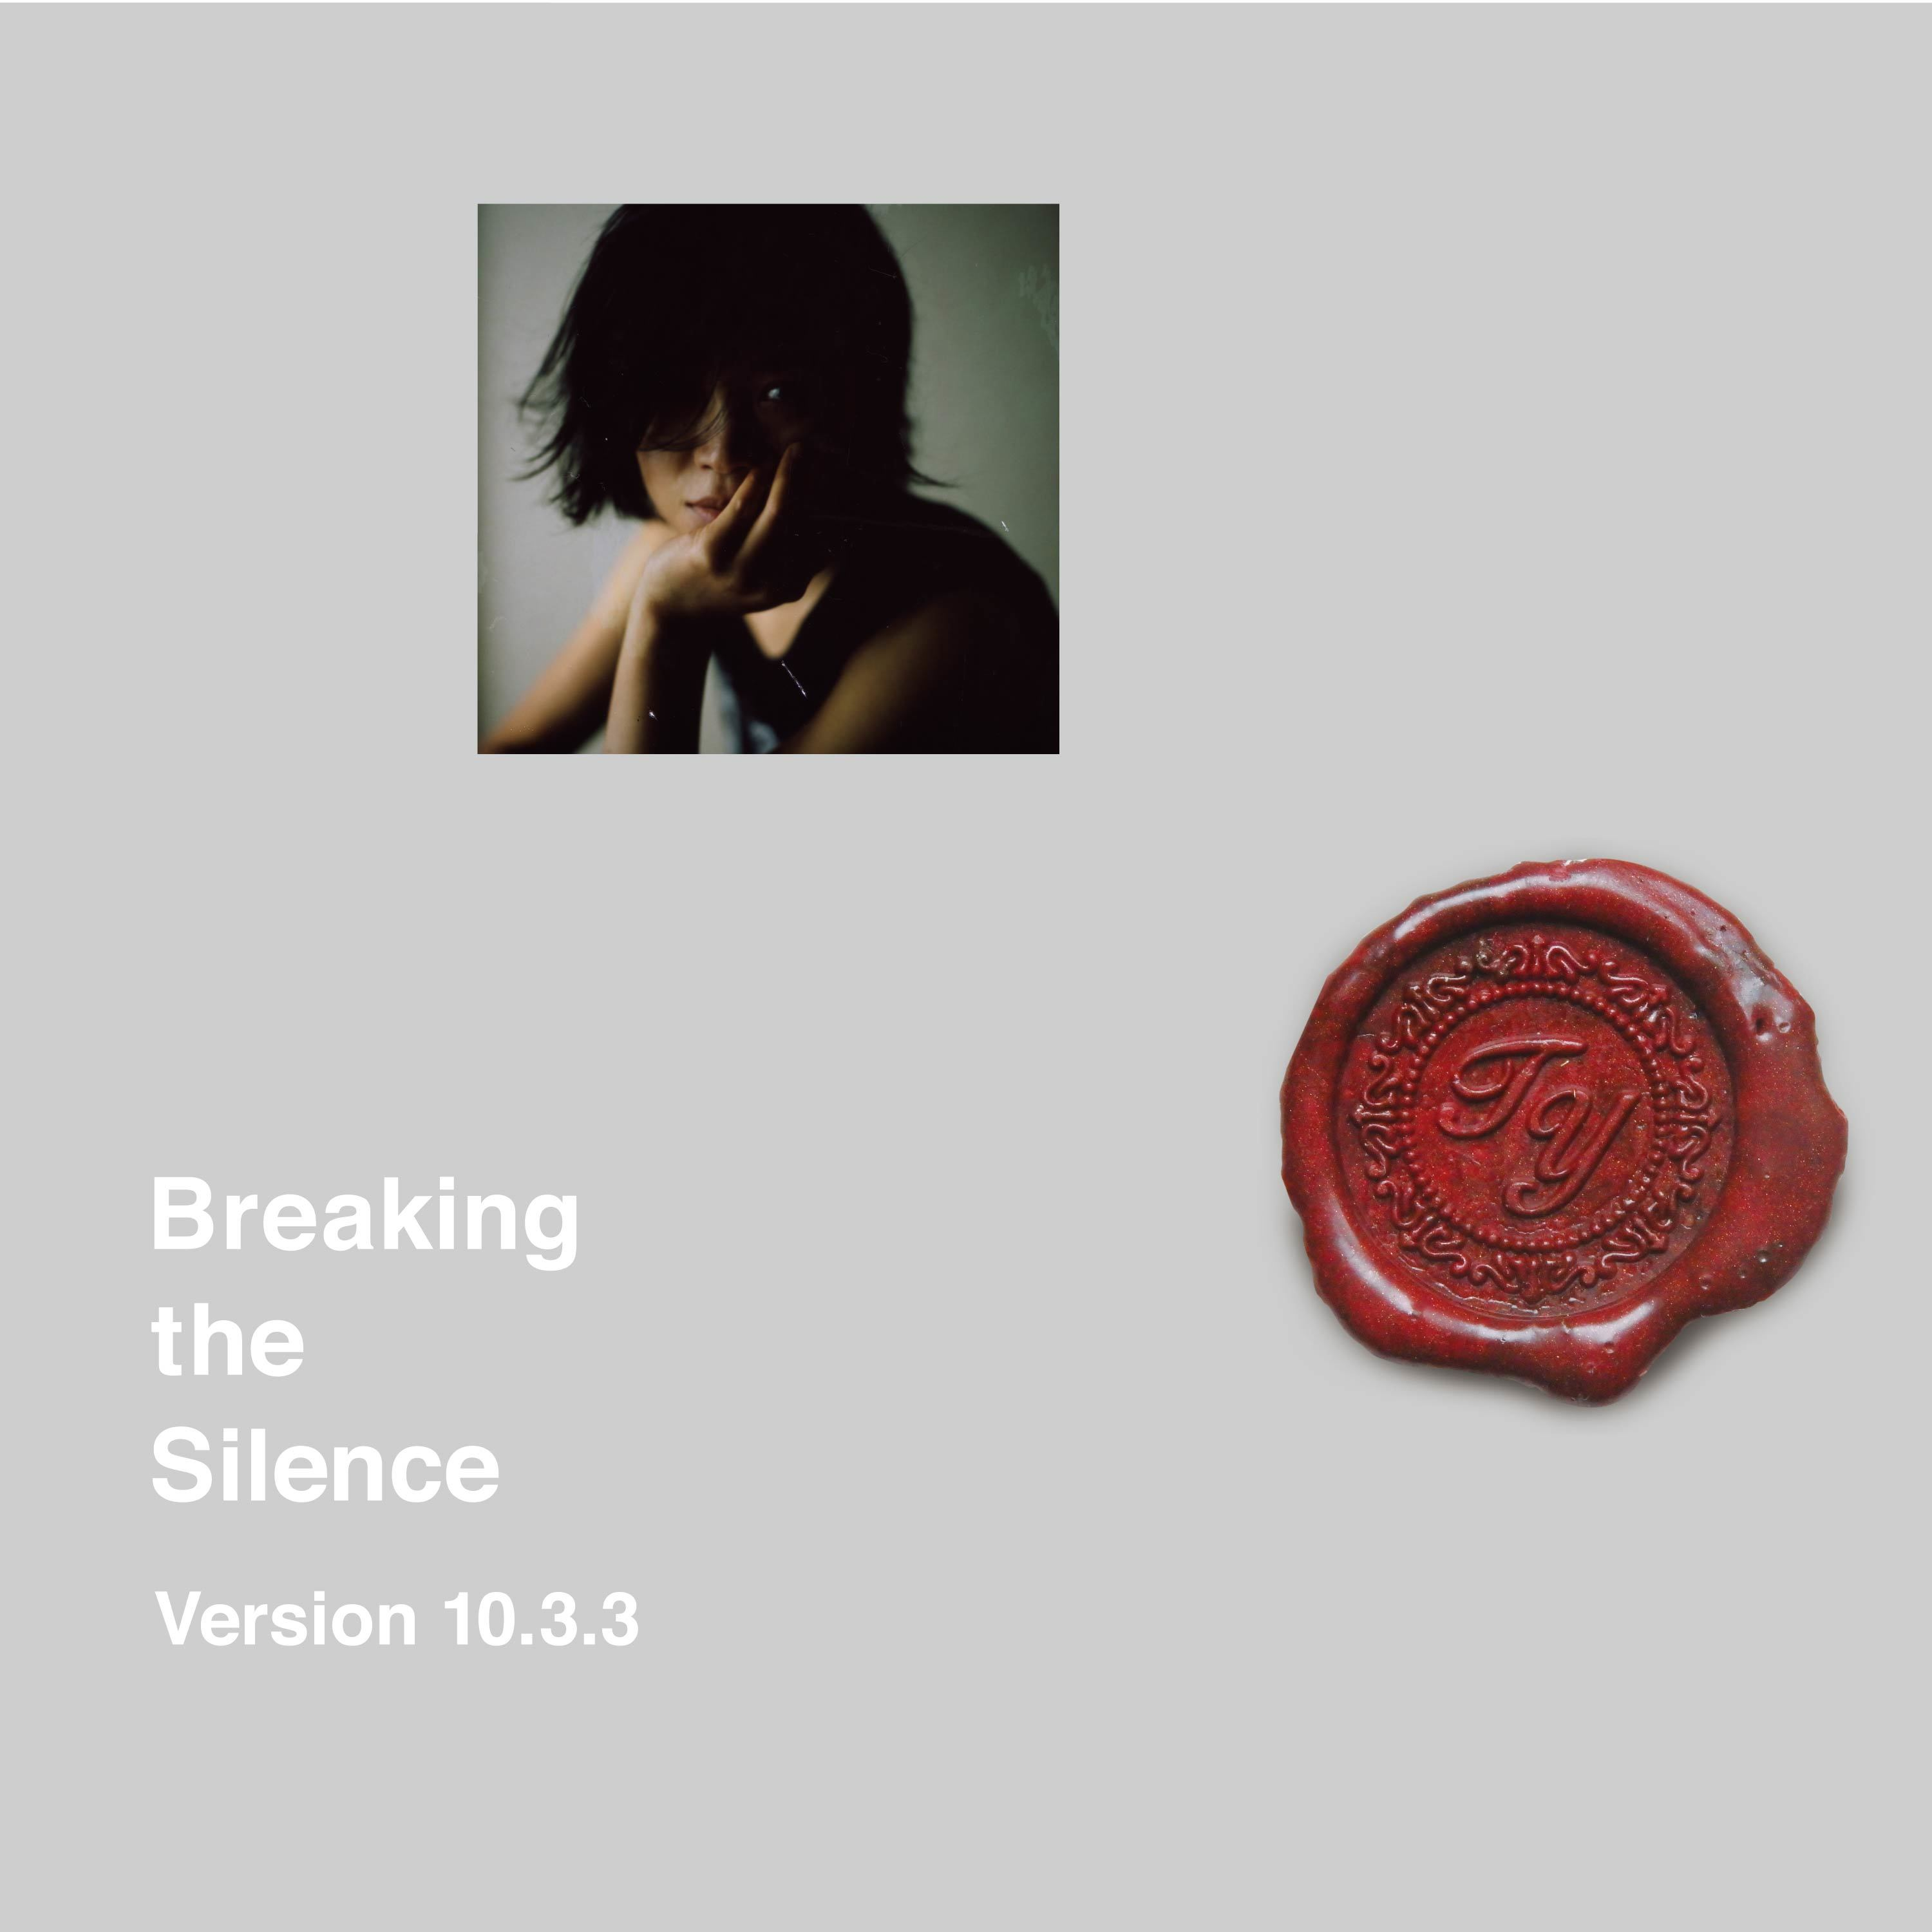 [CD] Toshiyuki Yasuda: Breaking the Silence (Version 10.3.3) (Gray × Red)